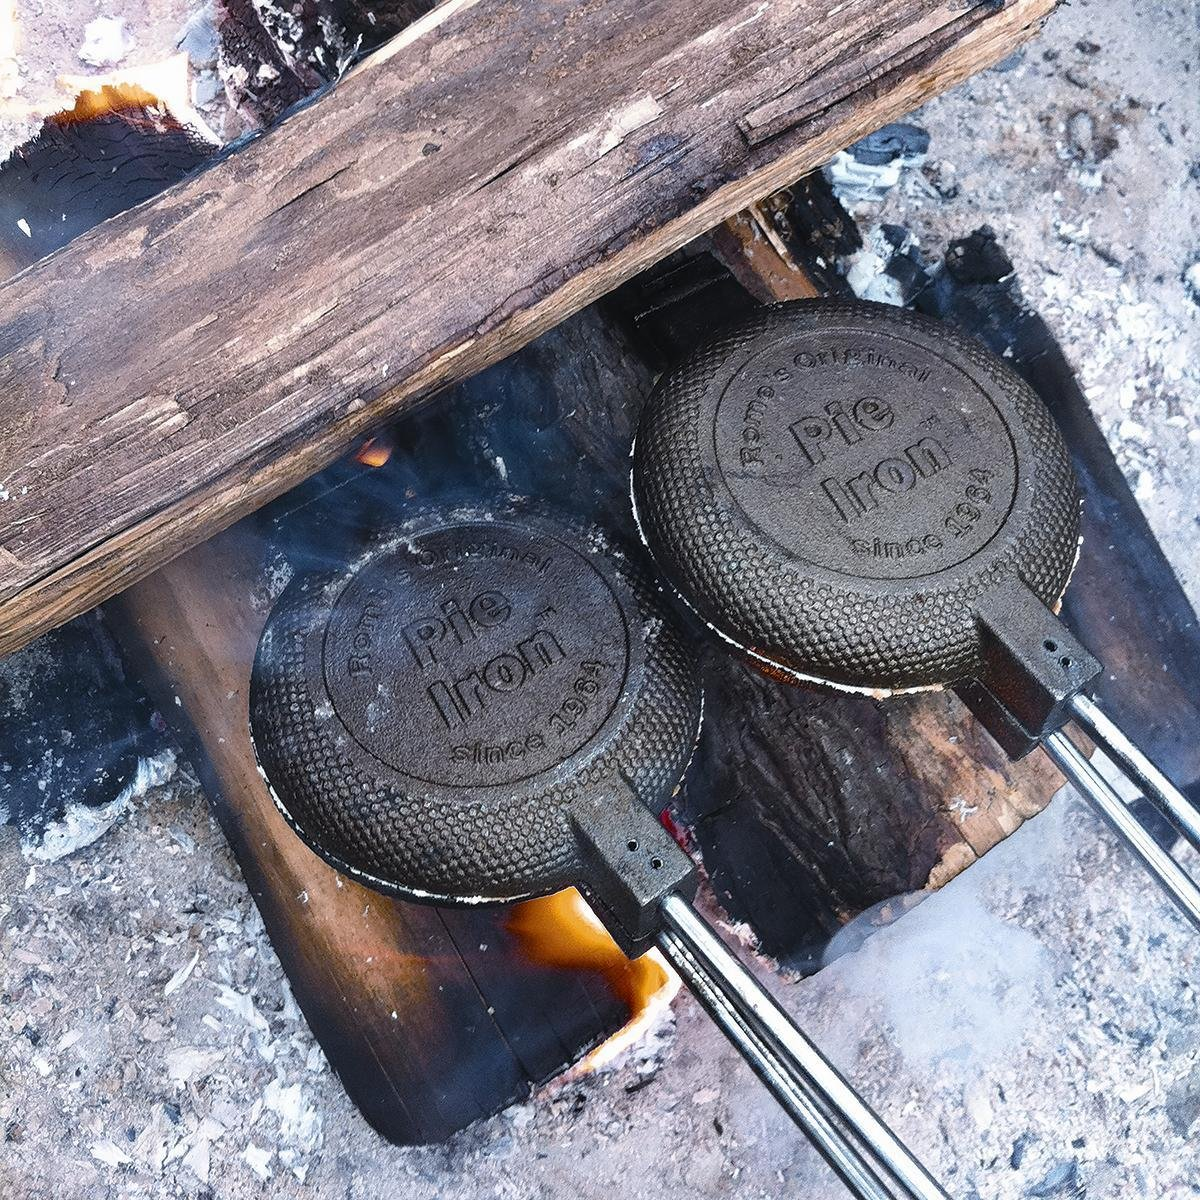 pie iron campfire wild turkey bbq sandwich outdoornews